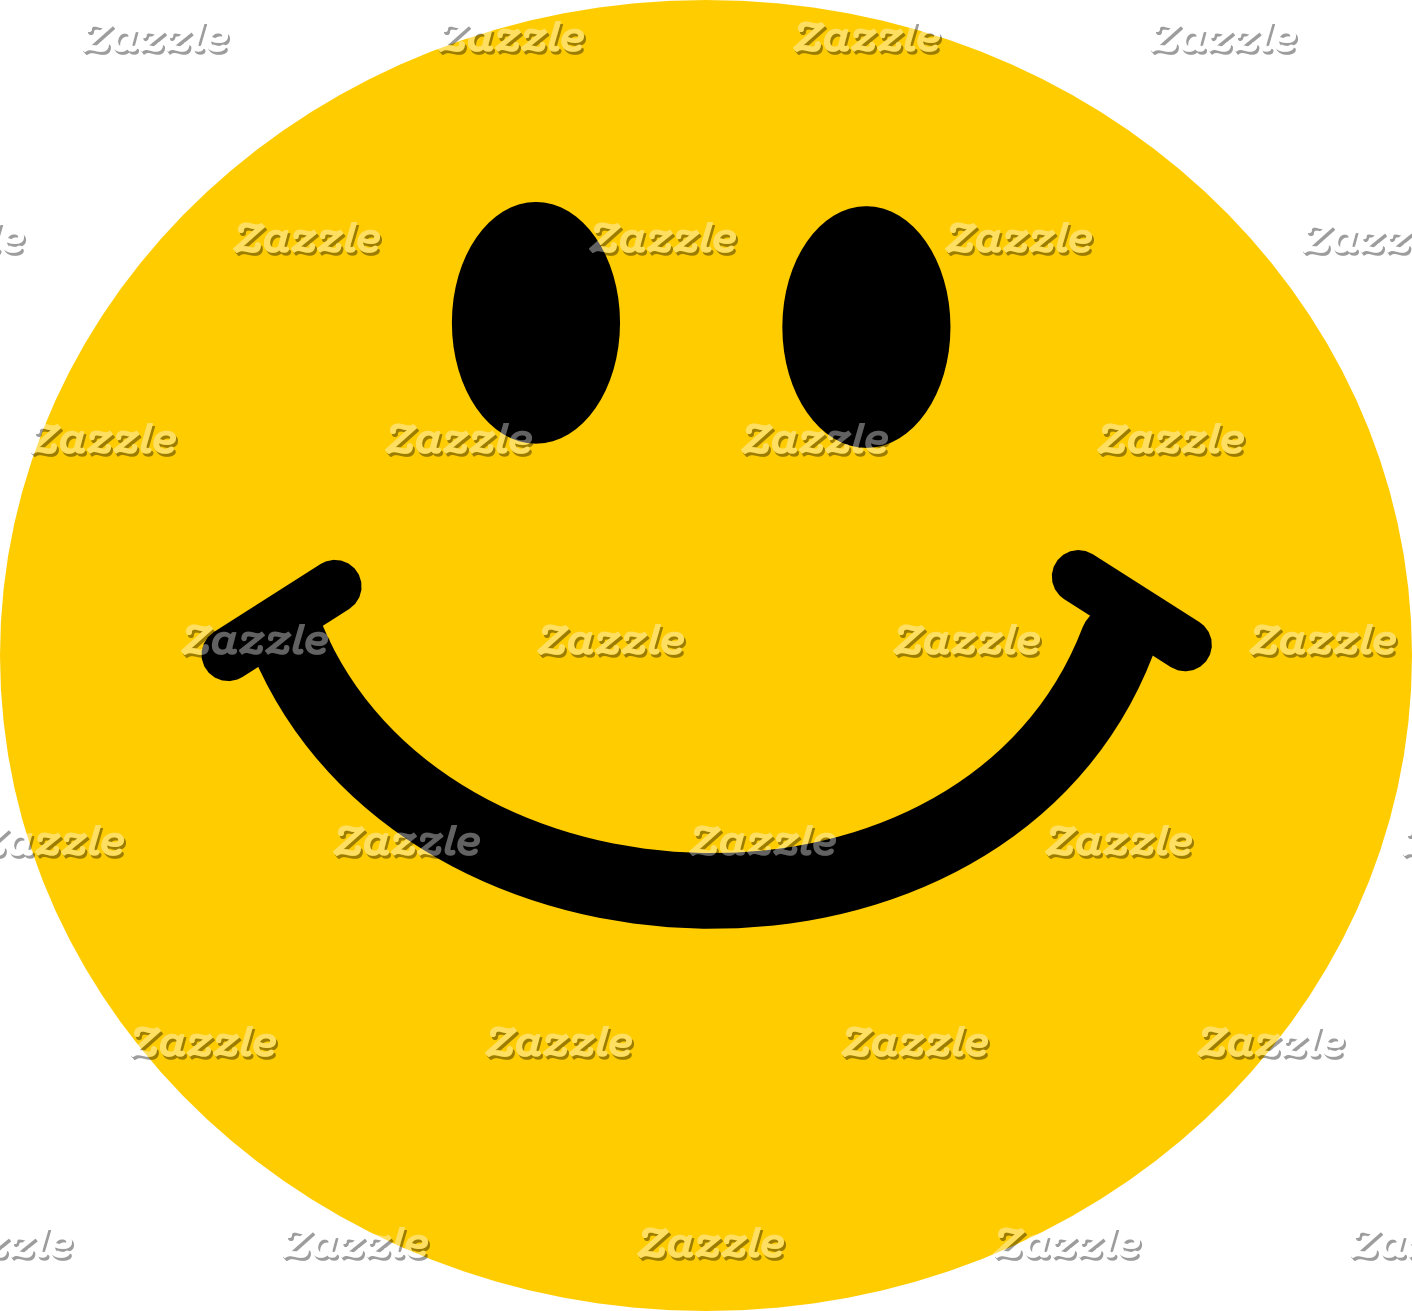 Standard Smiley in various colors